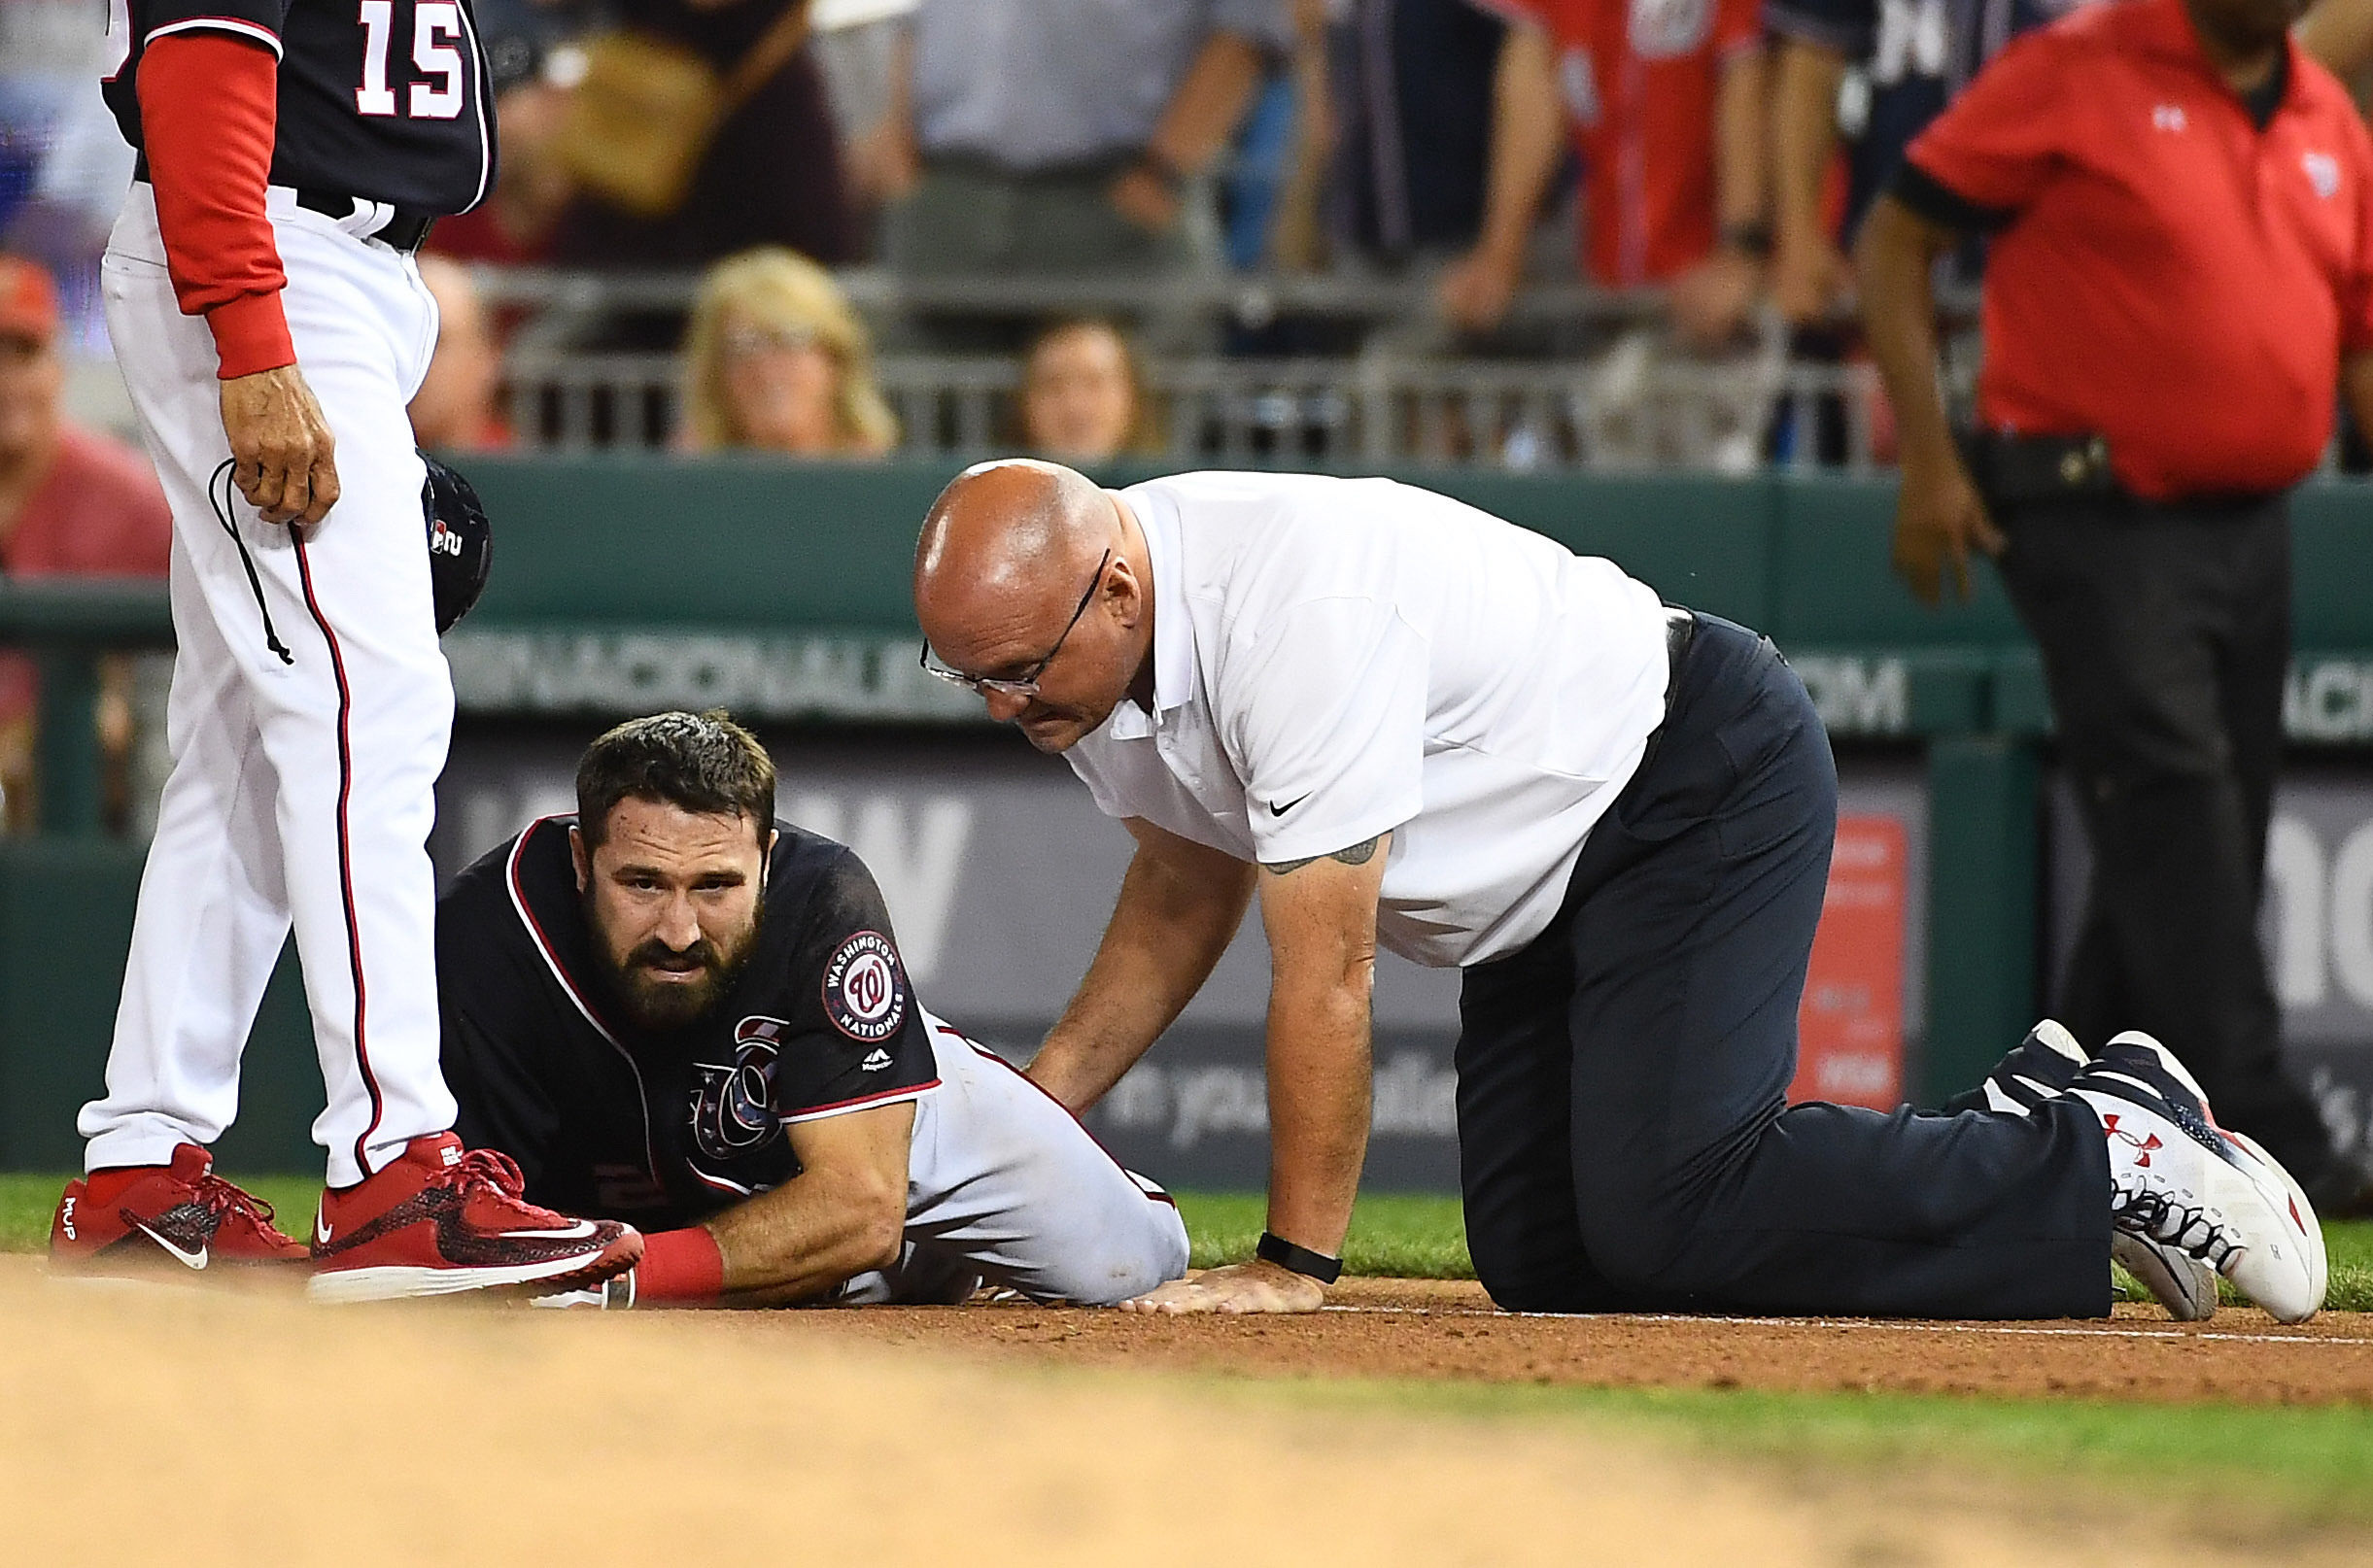 Washington Nationals: Adam Eaton Out for Season with Torn ACL